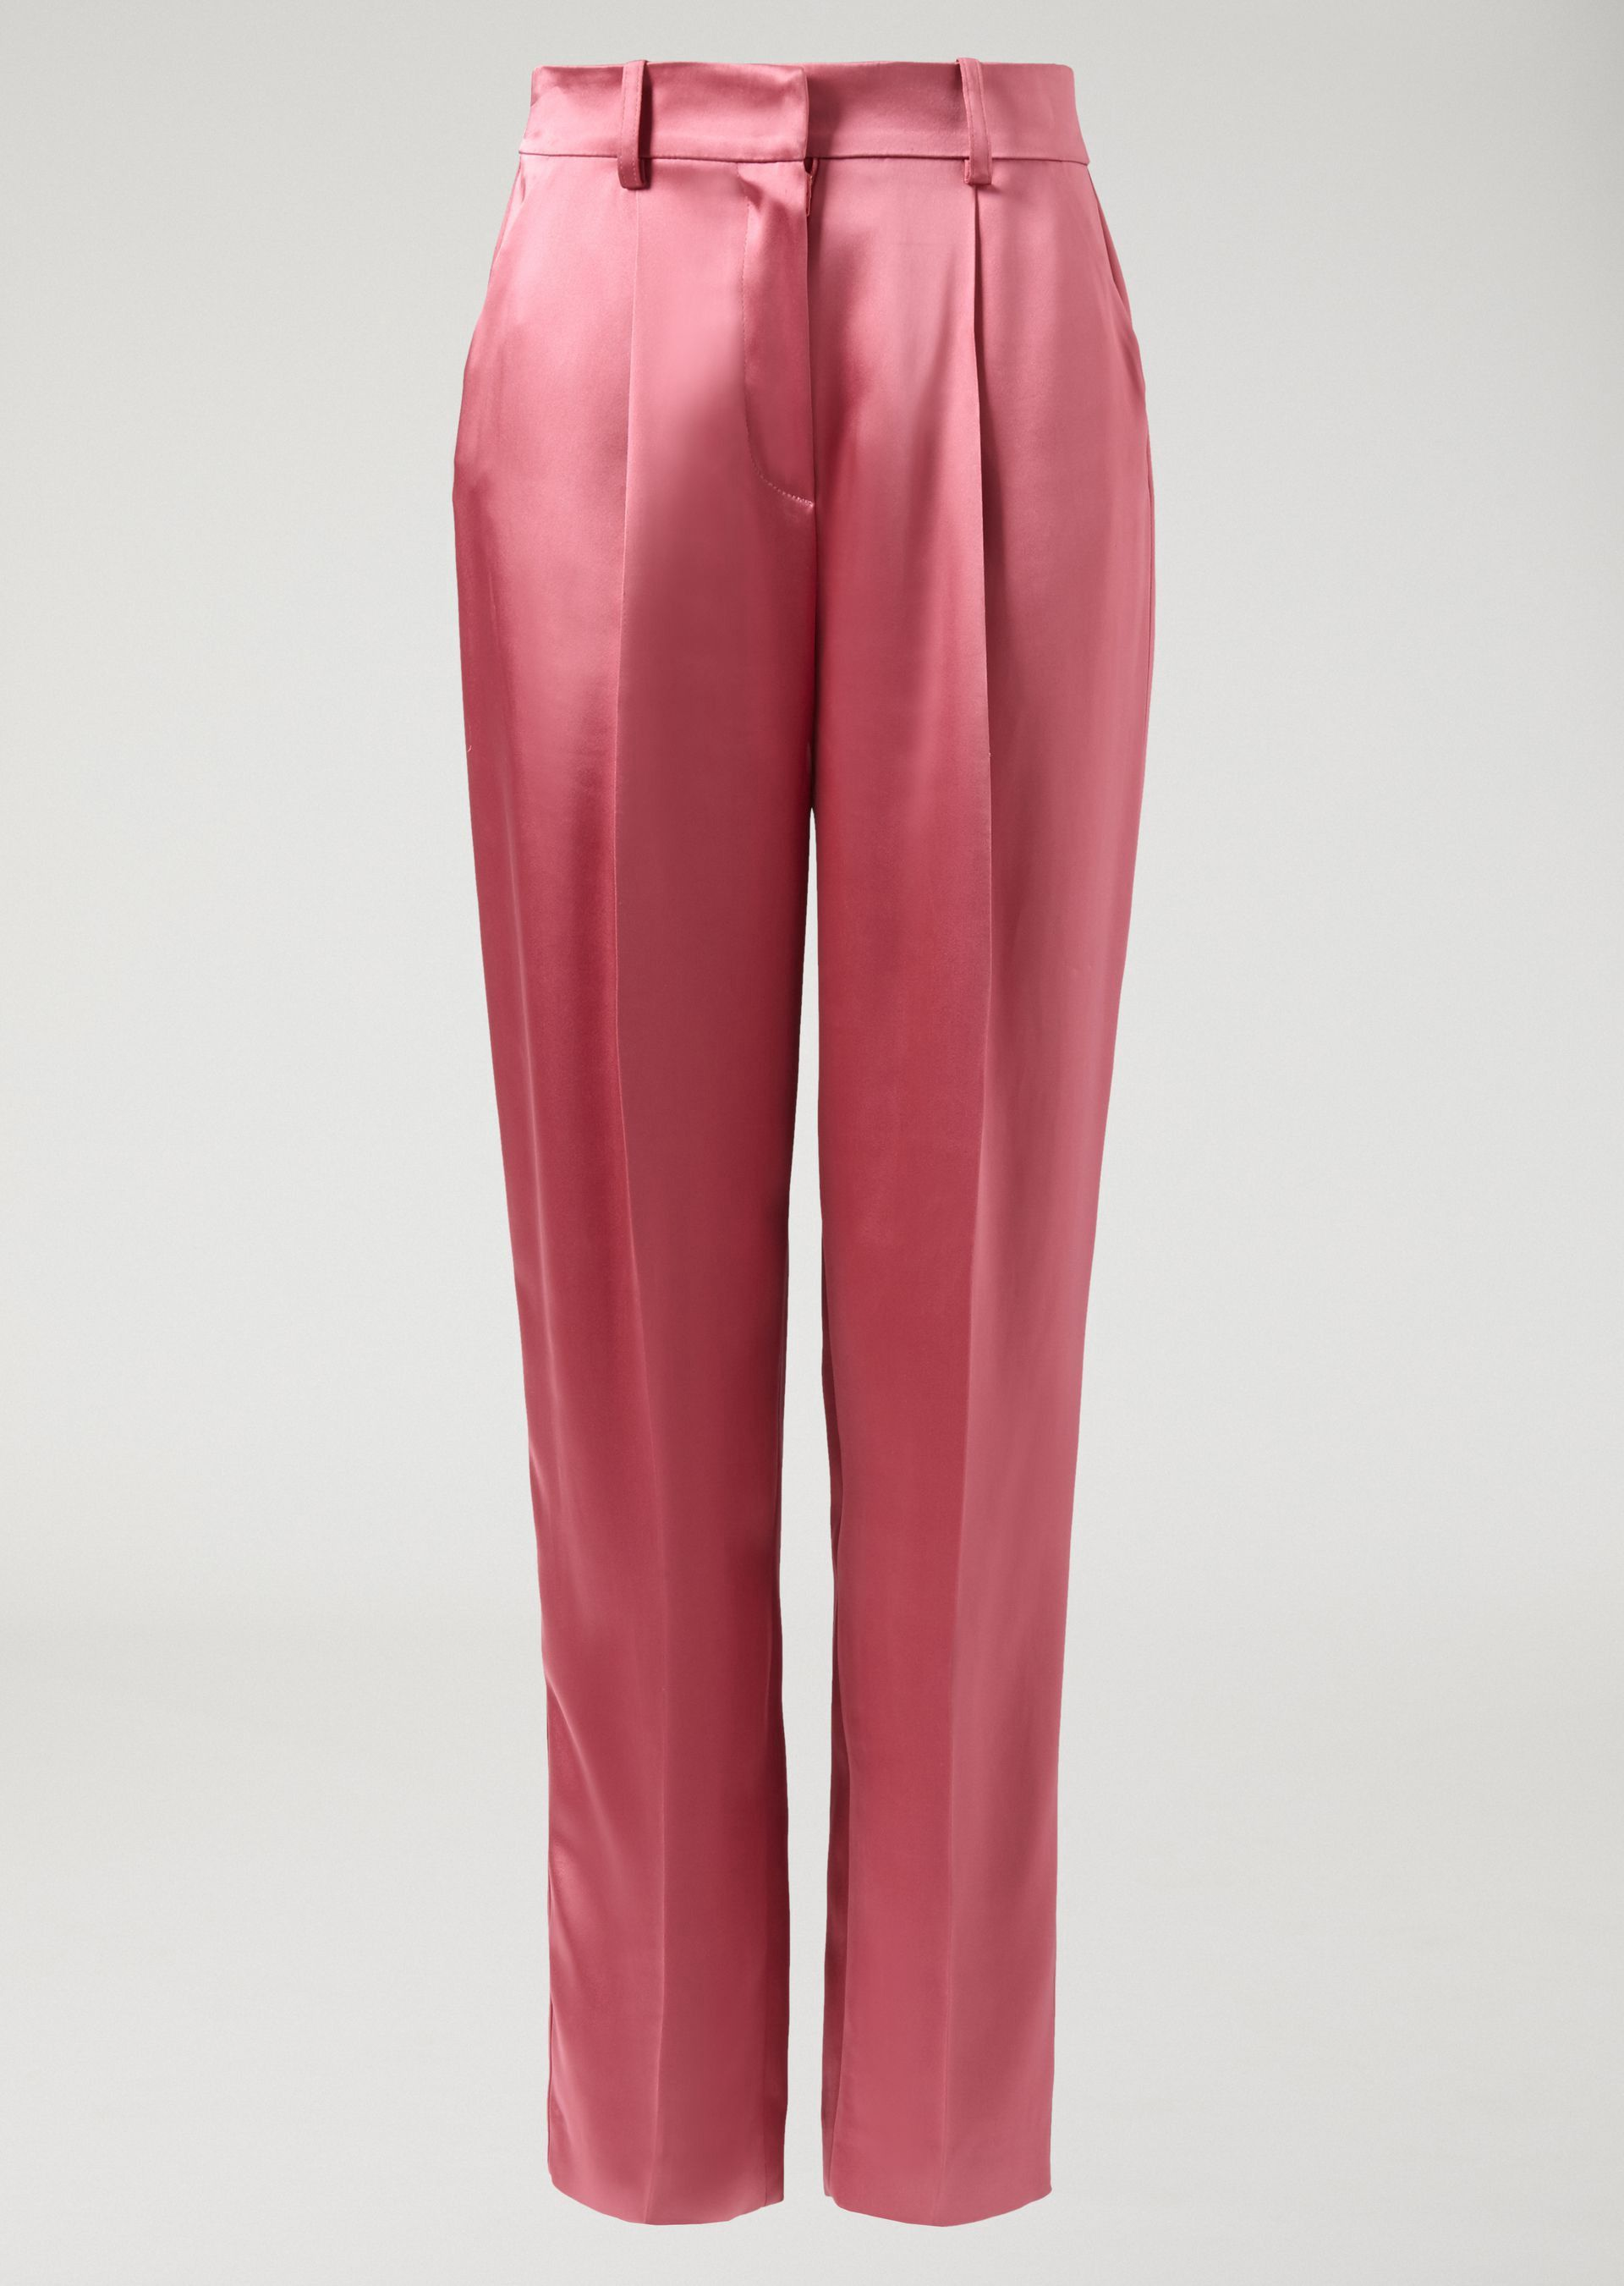 dc7cd246b5 Emporio Armani Double-Faced Smooth Satin Trousers With Darts - Red 6 ...